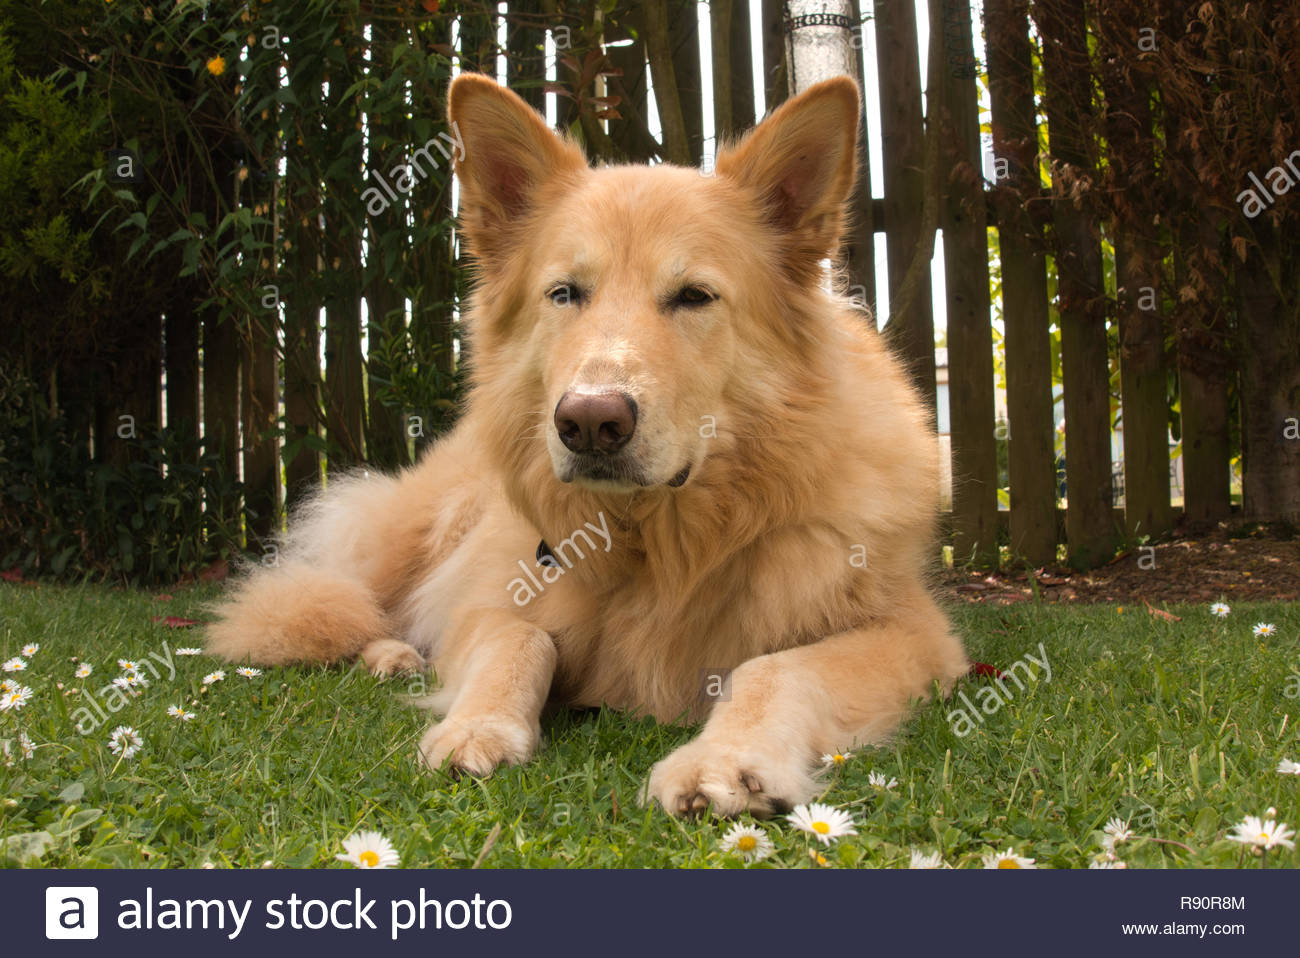 Sandy The German Shepherd Golden Retriever Cross Resting In The